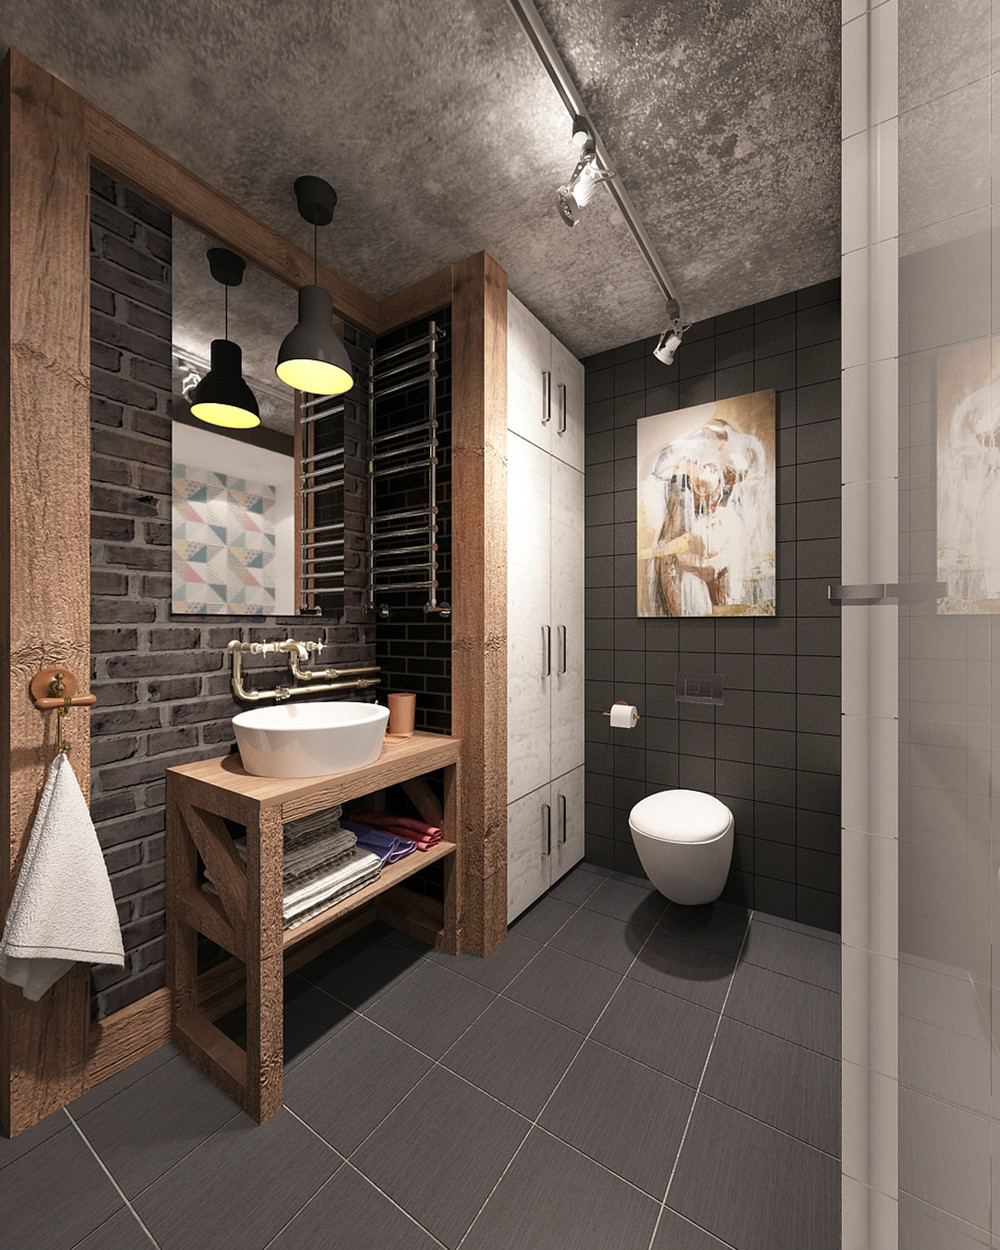 Permalink to 18 Cool Modern Industrial Bathroom Ideas